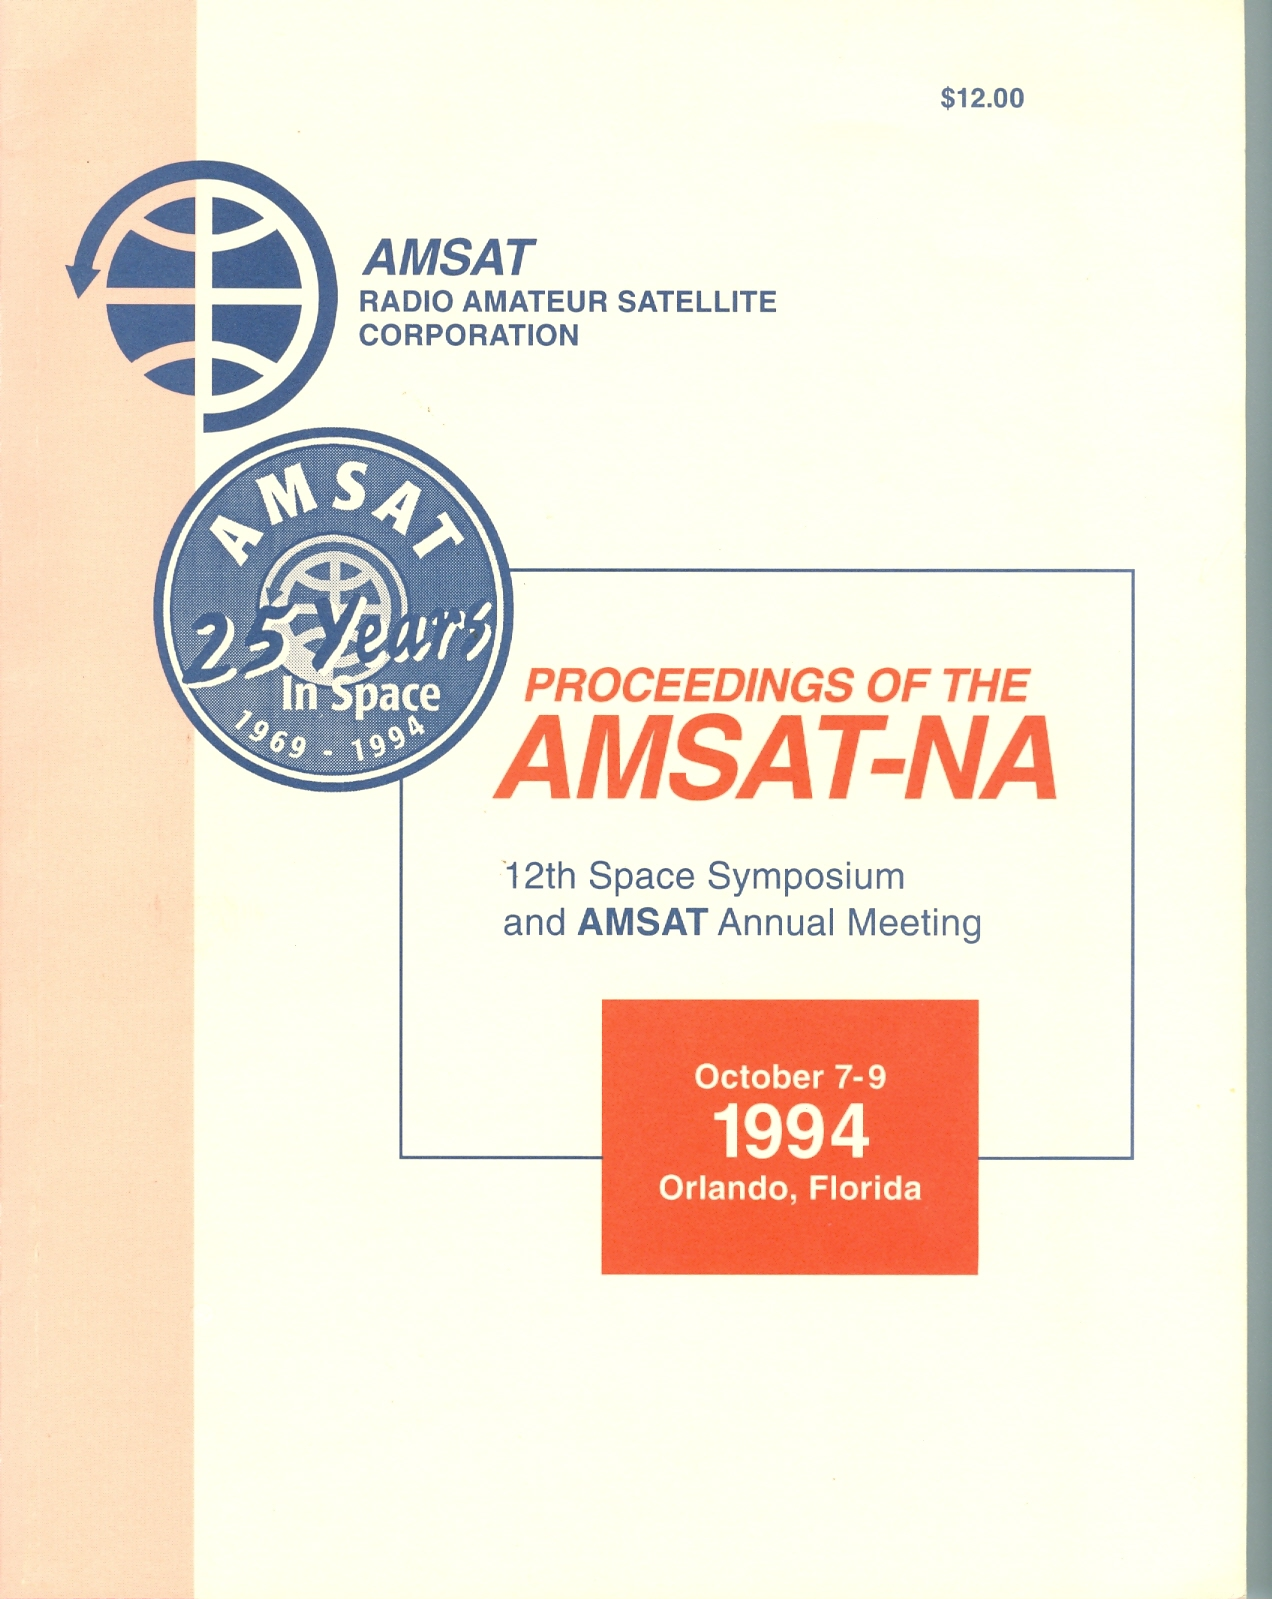 Proceedings of the AMSAT-NA 12th Space Symposium, and AMSAT Annual Meeting, October 7-9, 1994, Orlando, Florida.